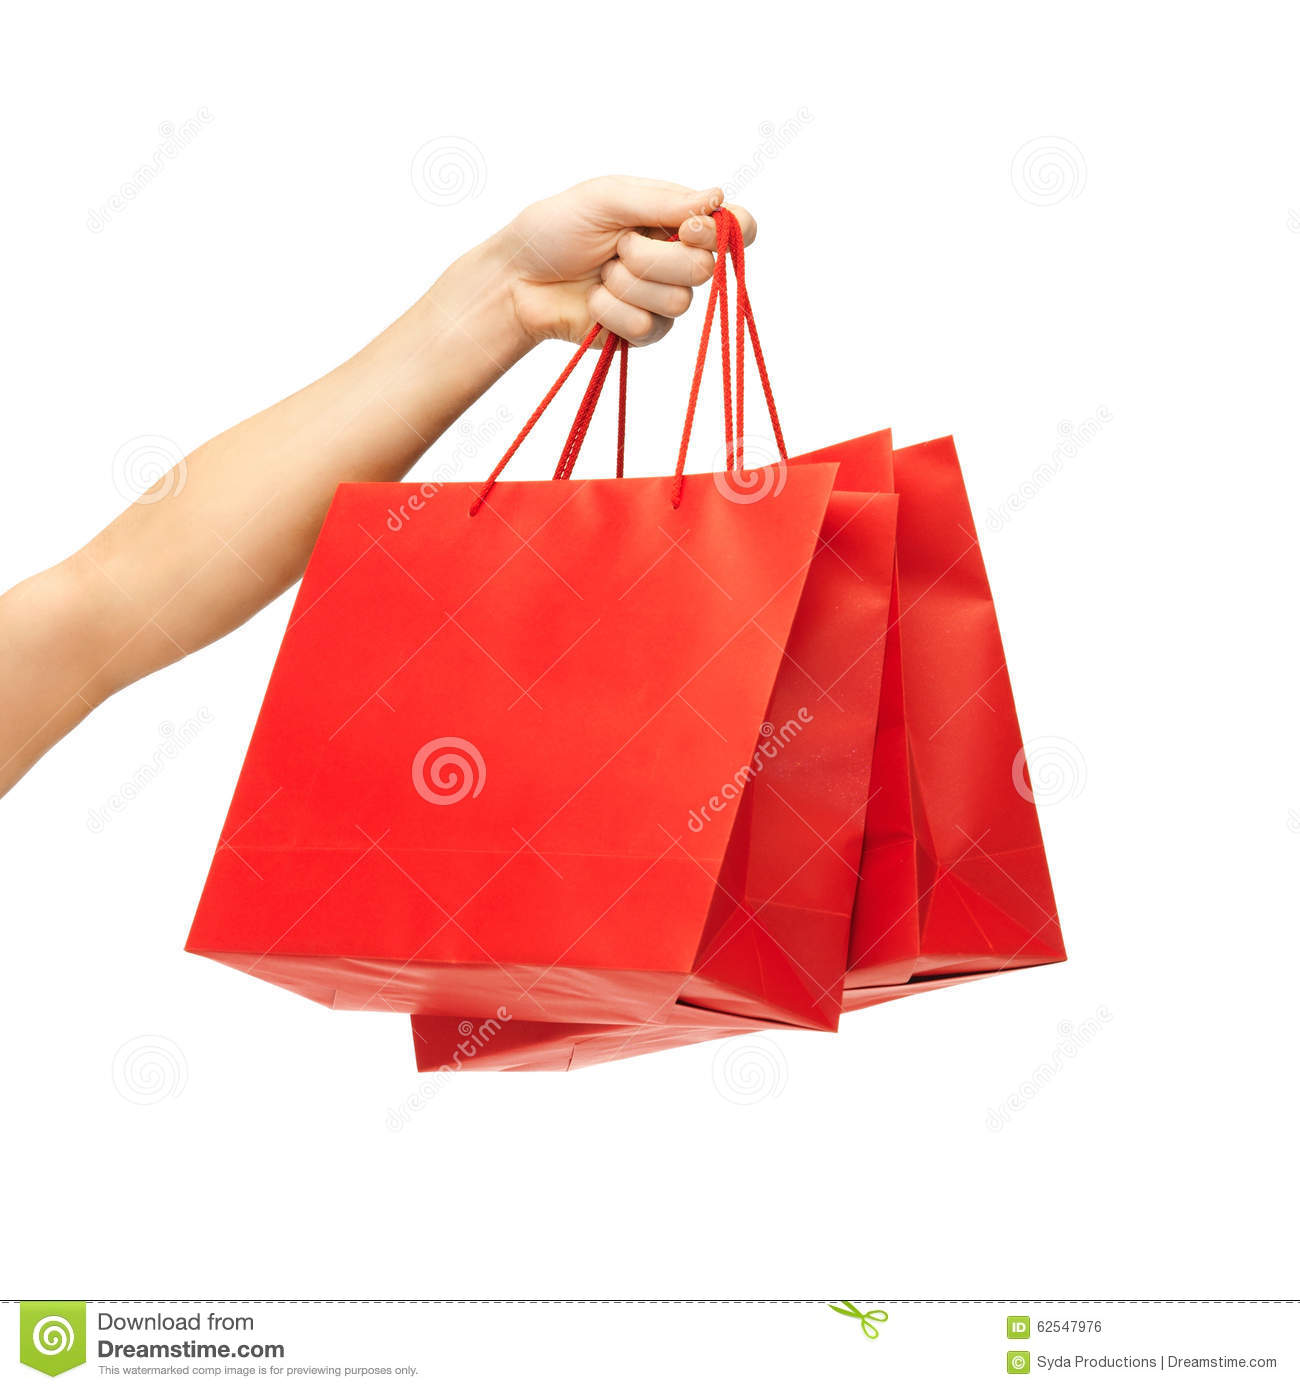 Close up of hand holding red shopping bags